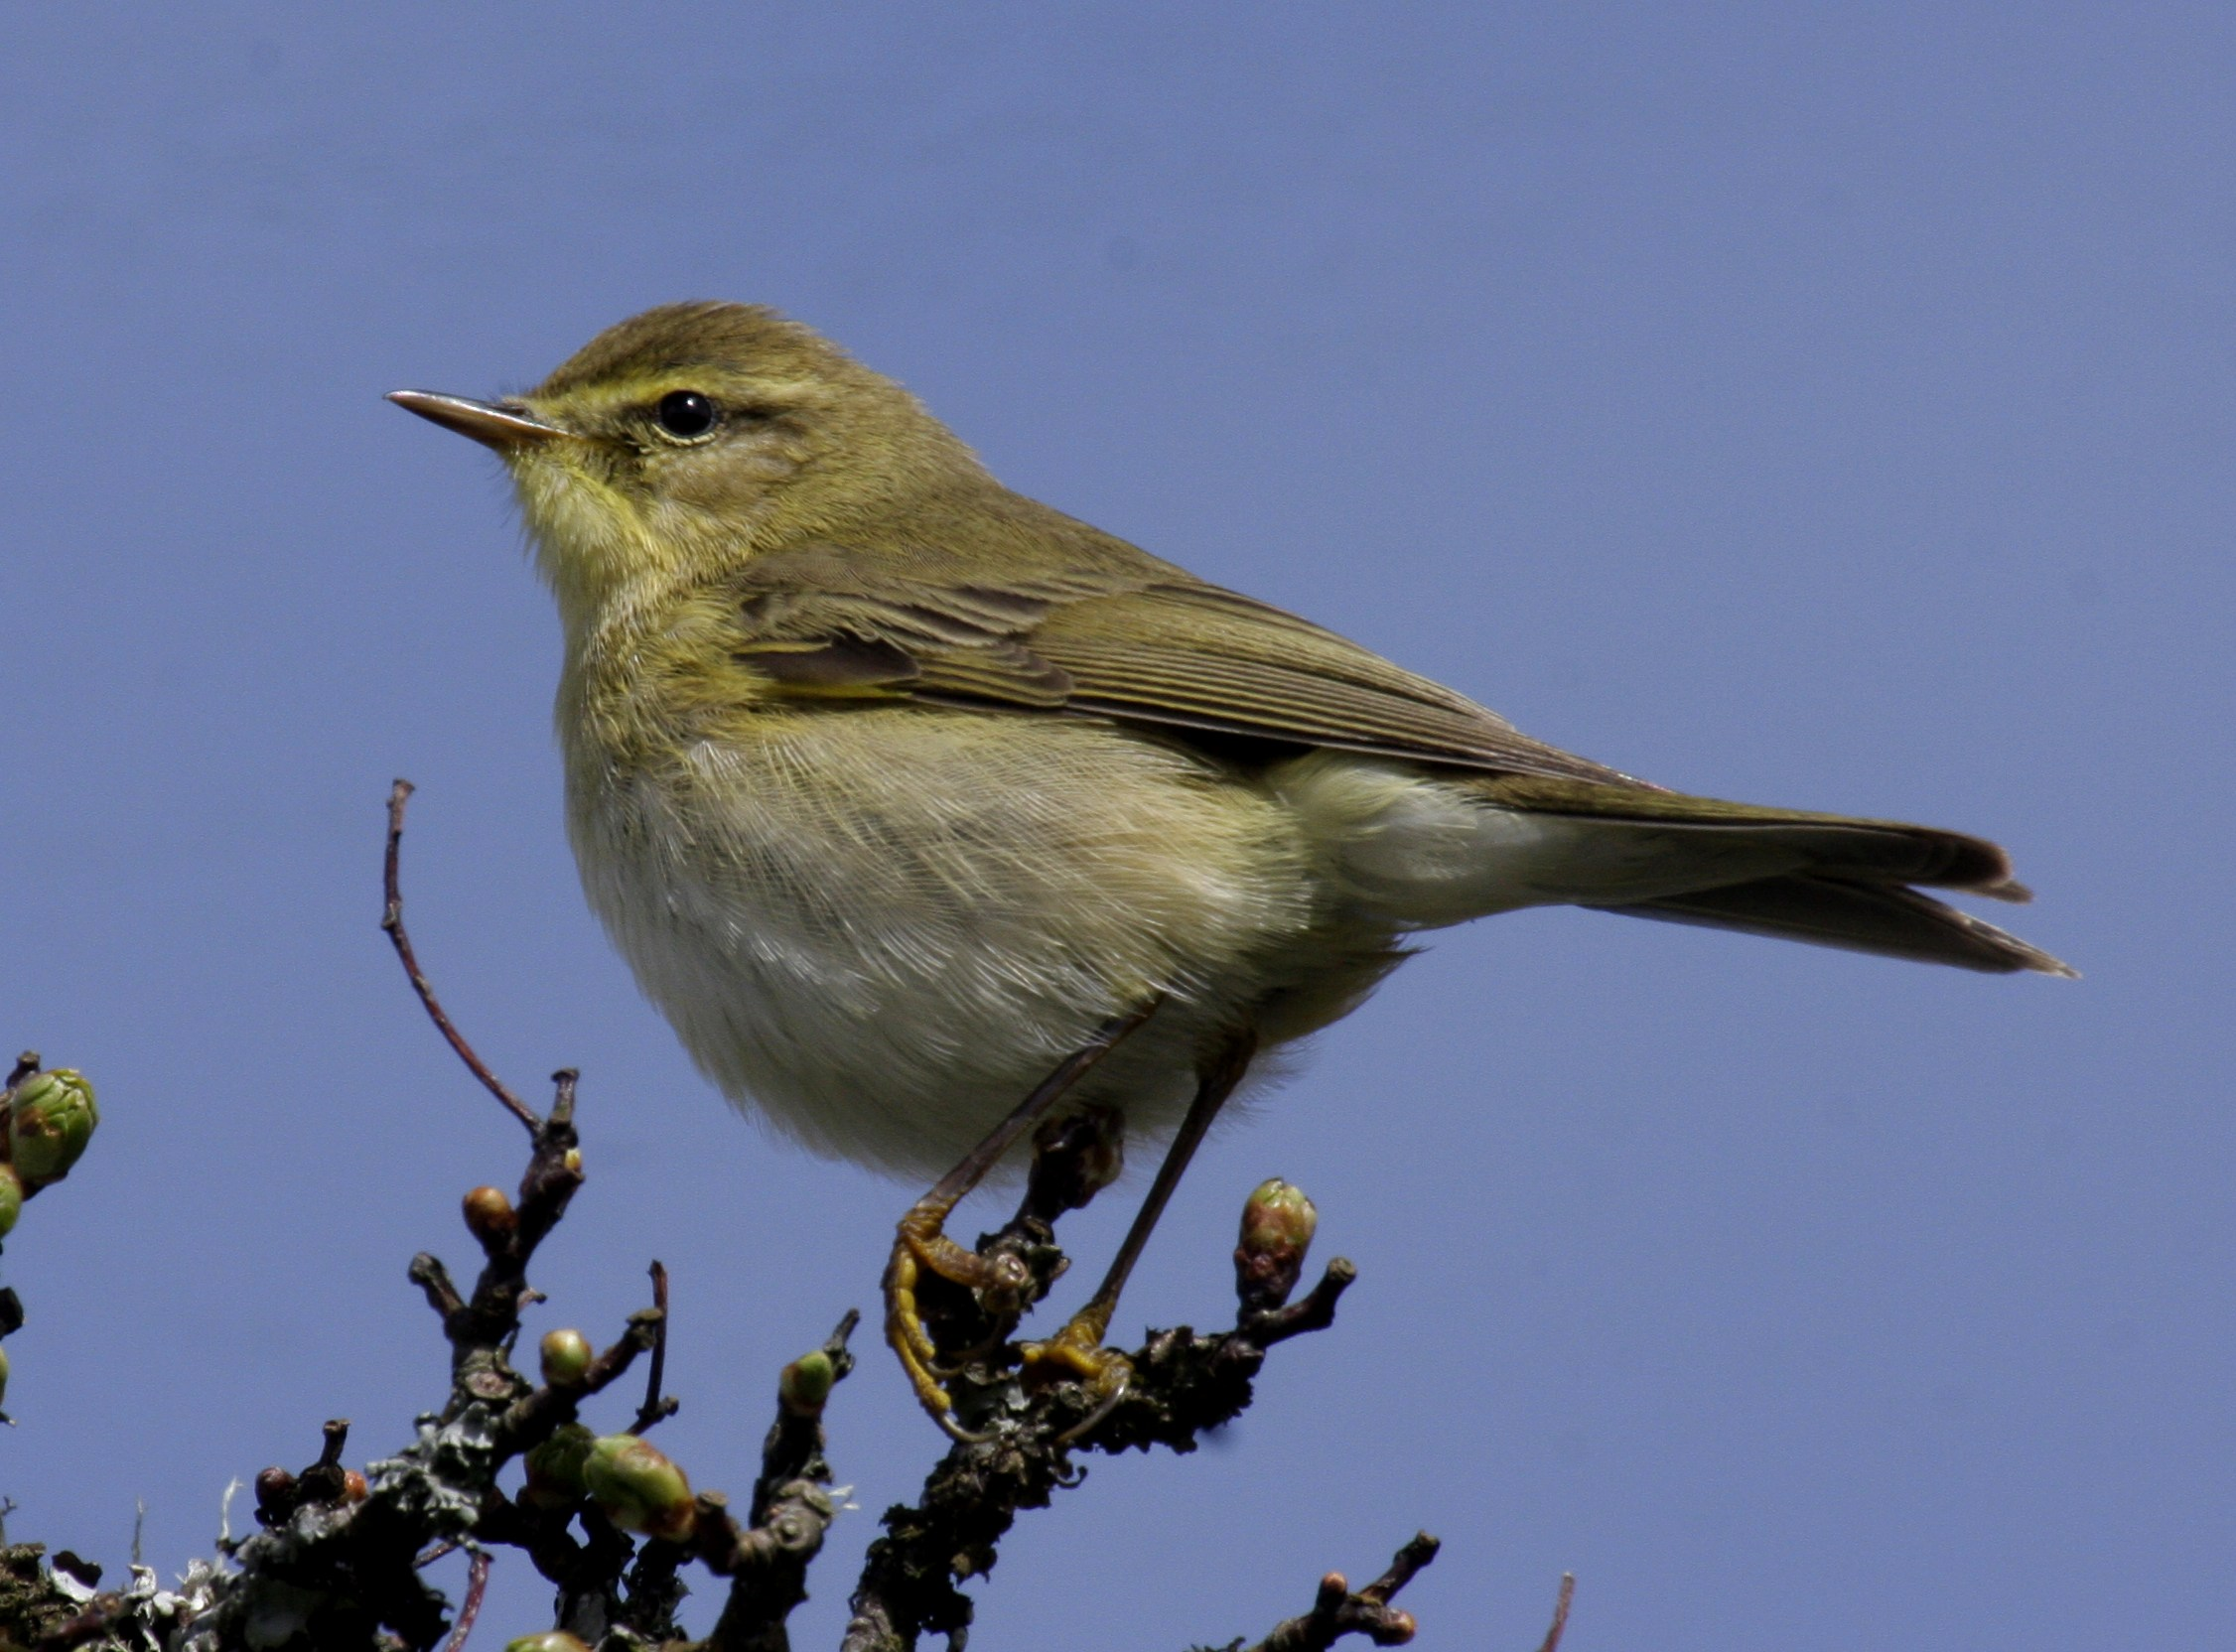 Willow_warbler_UK09